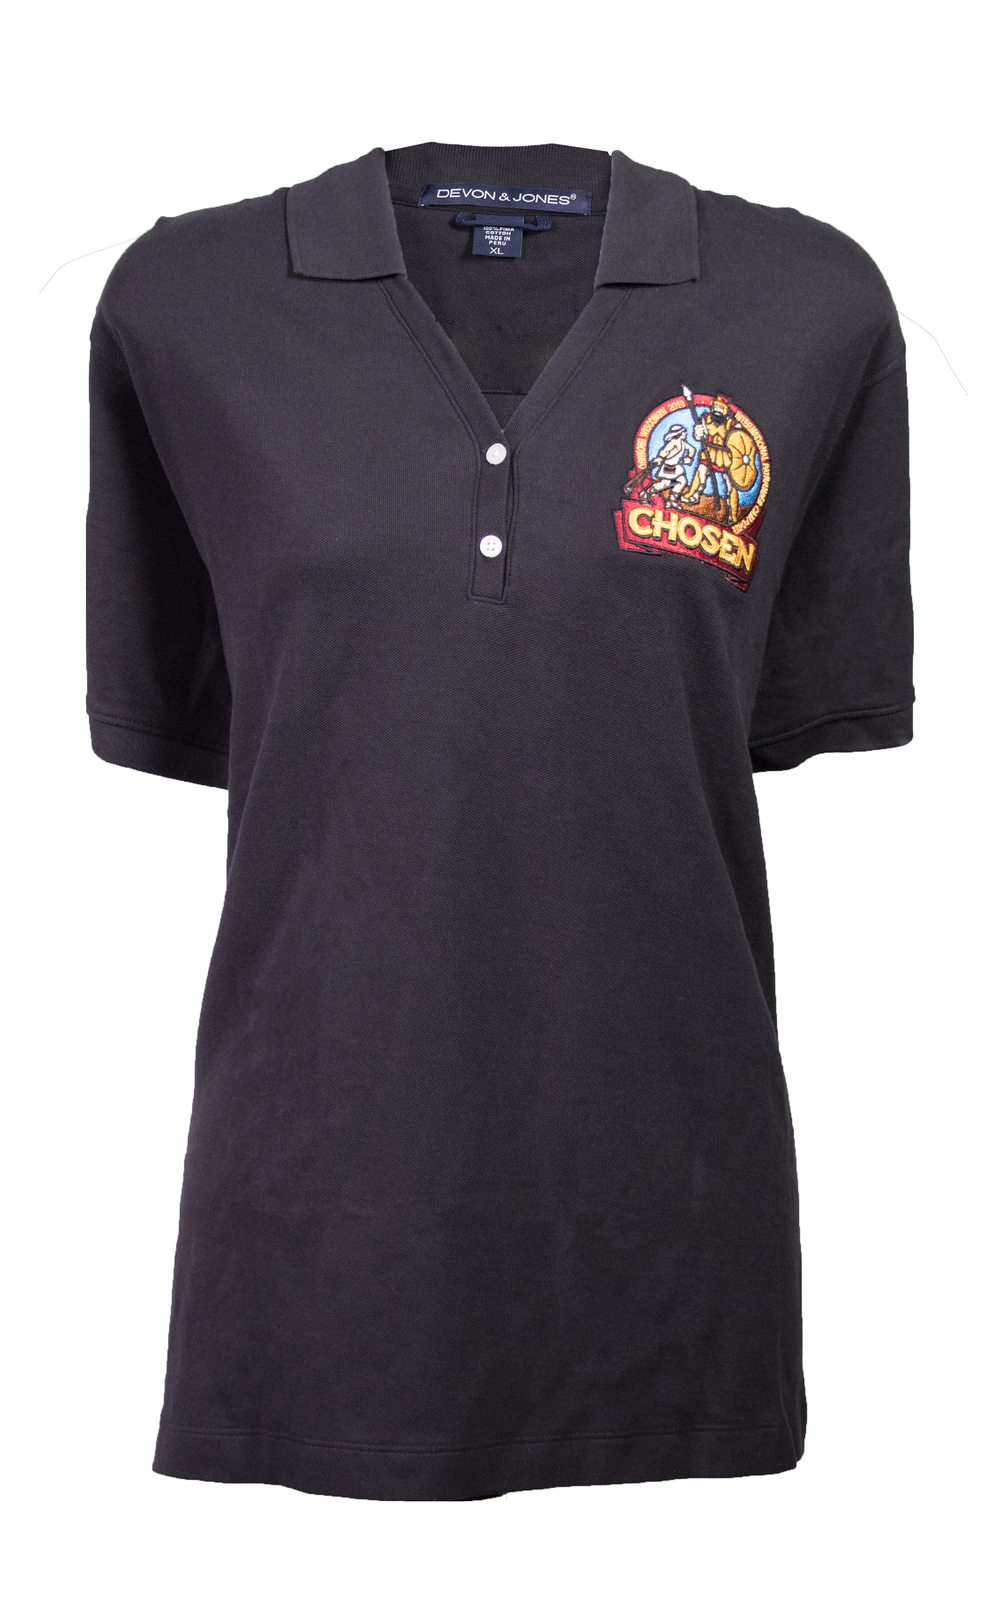 Chosen Women's Polo Black